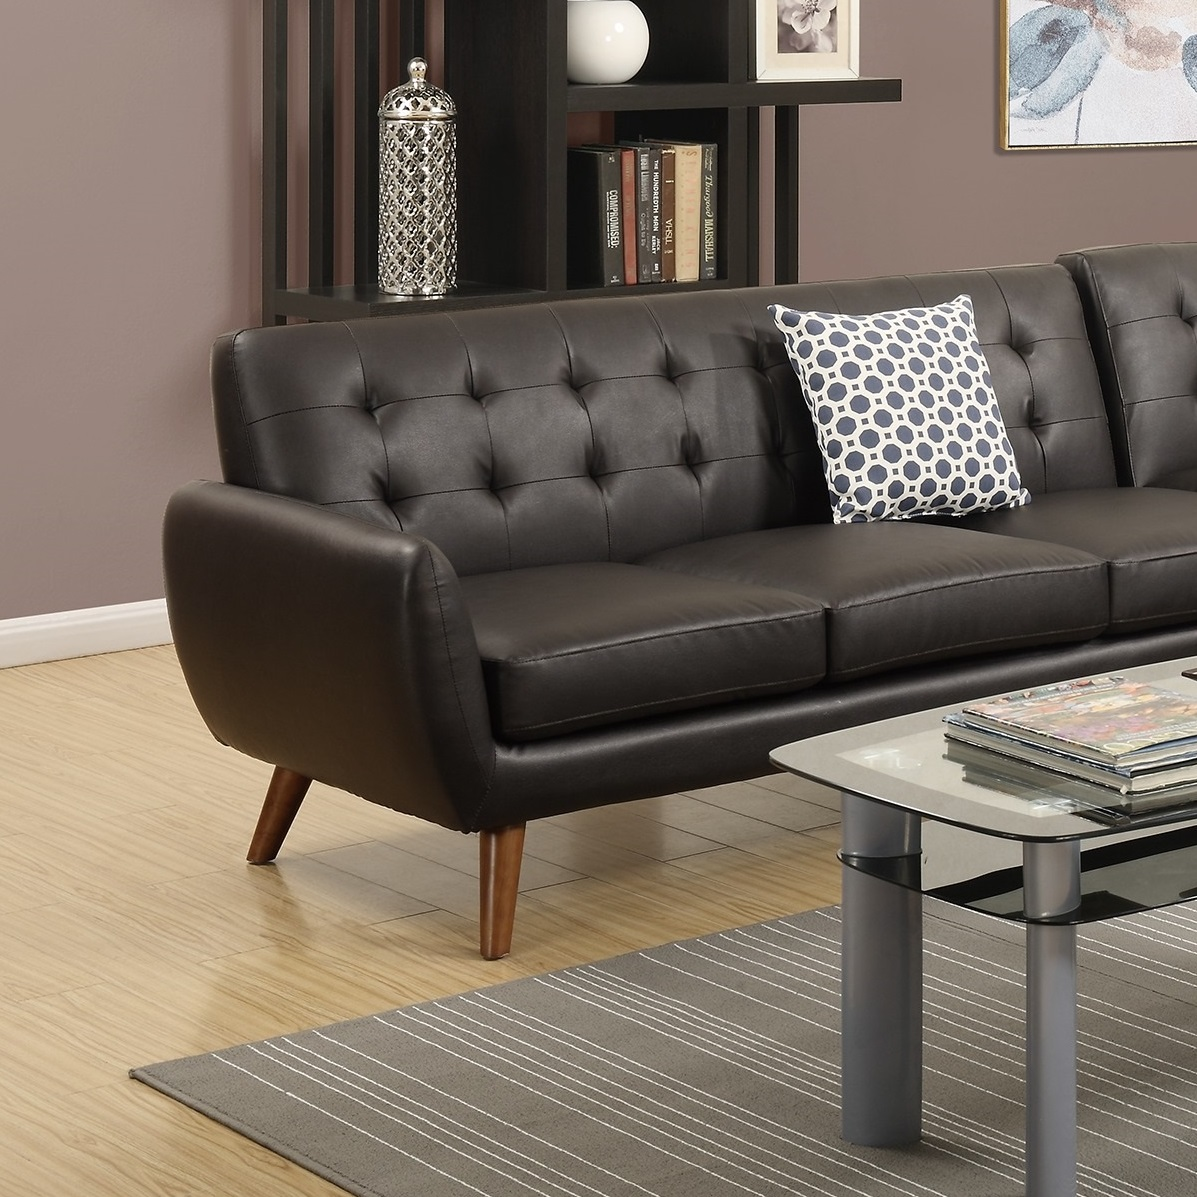 sectional leather sofa chaise tufted couch hot sectionals. Black Bedroom Furniture Sets. Home Design Ideas